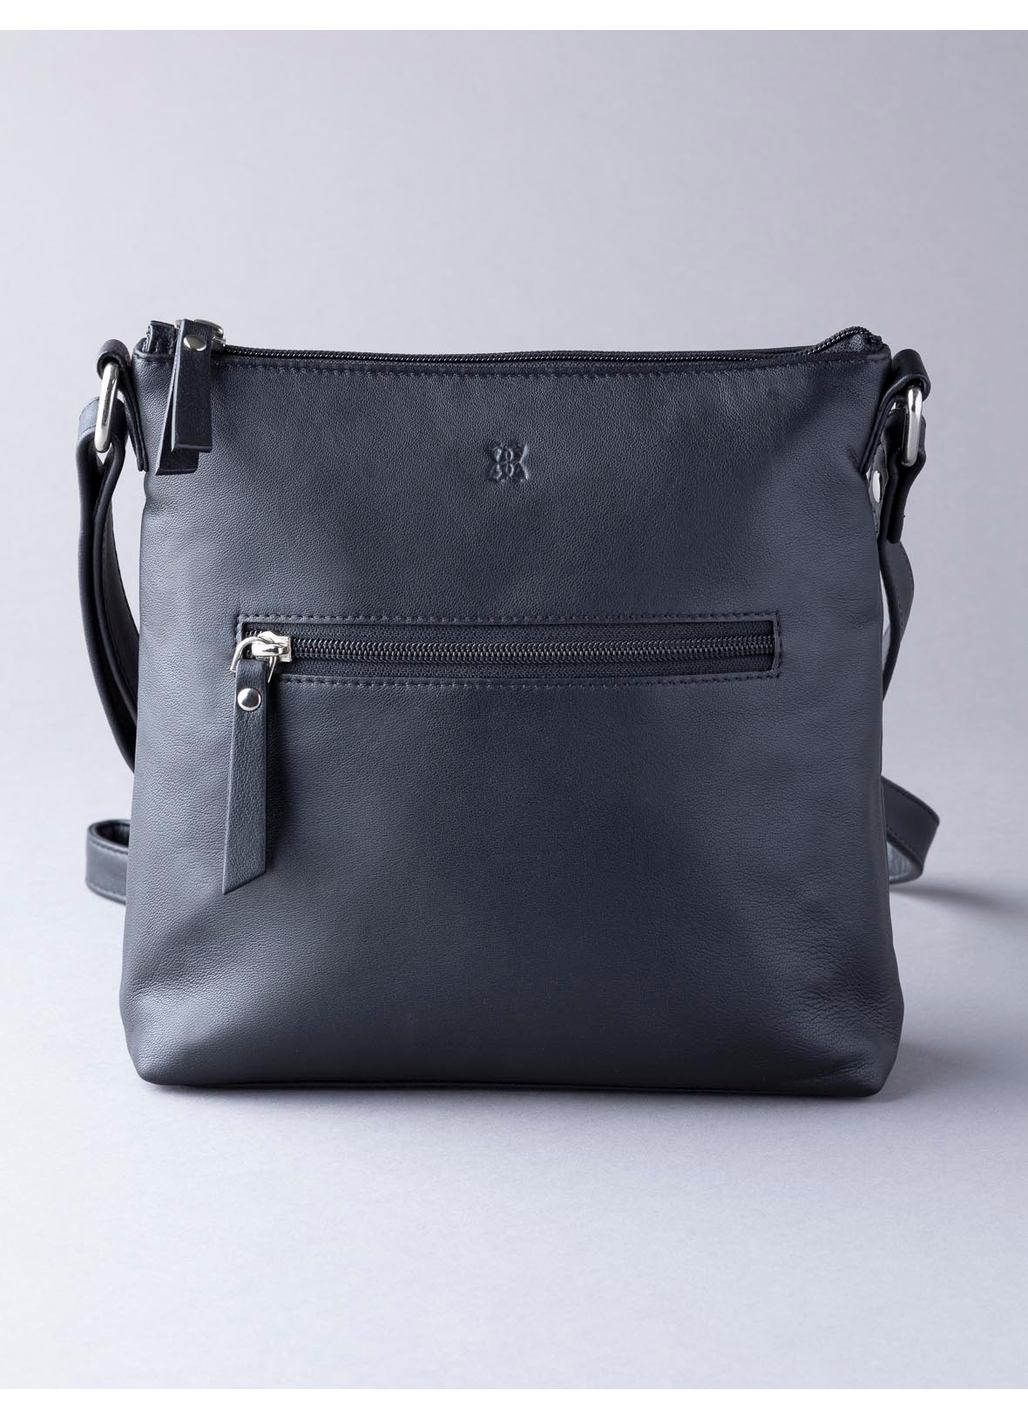 Tally Leather Cross Body Bag in Black